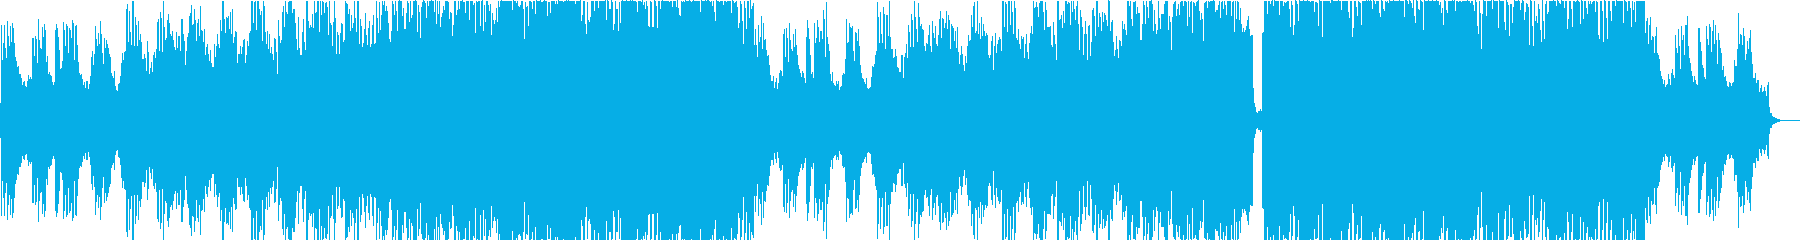 Cool Japanese-style EDM! Sprinting feeling opening's reproduced waveform